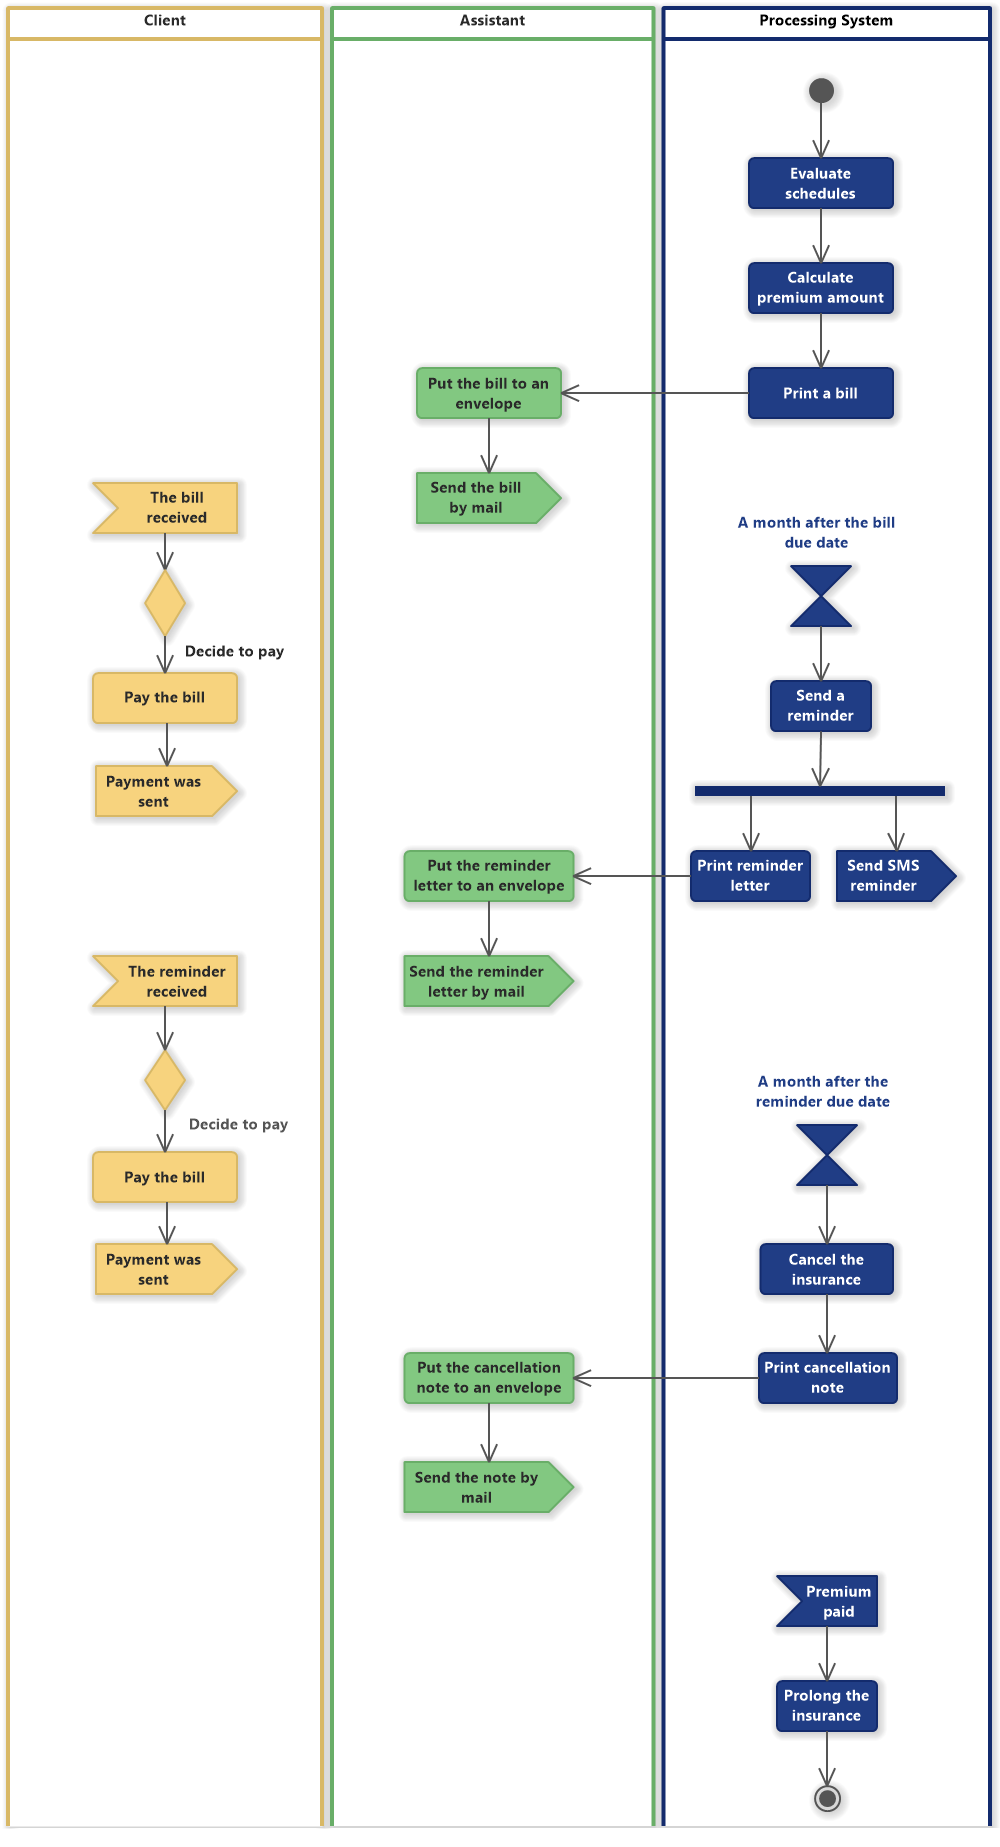 Insurance Premium Collection (UML Activity Diagram)